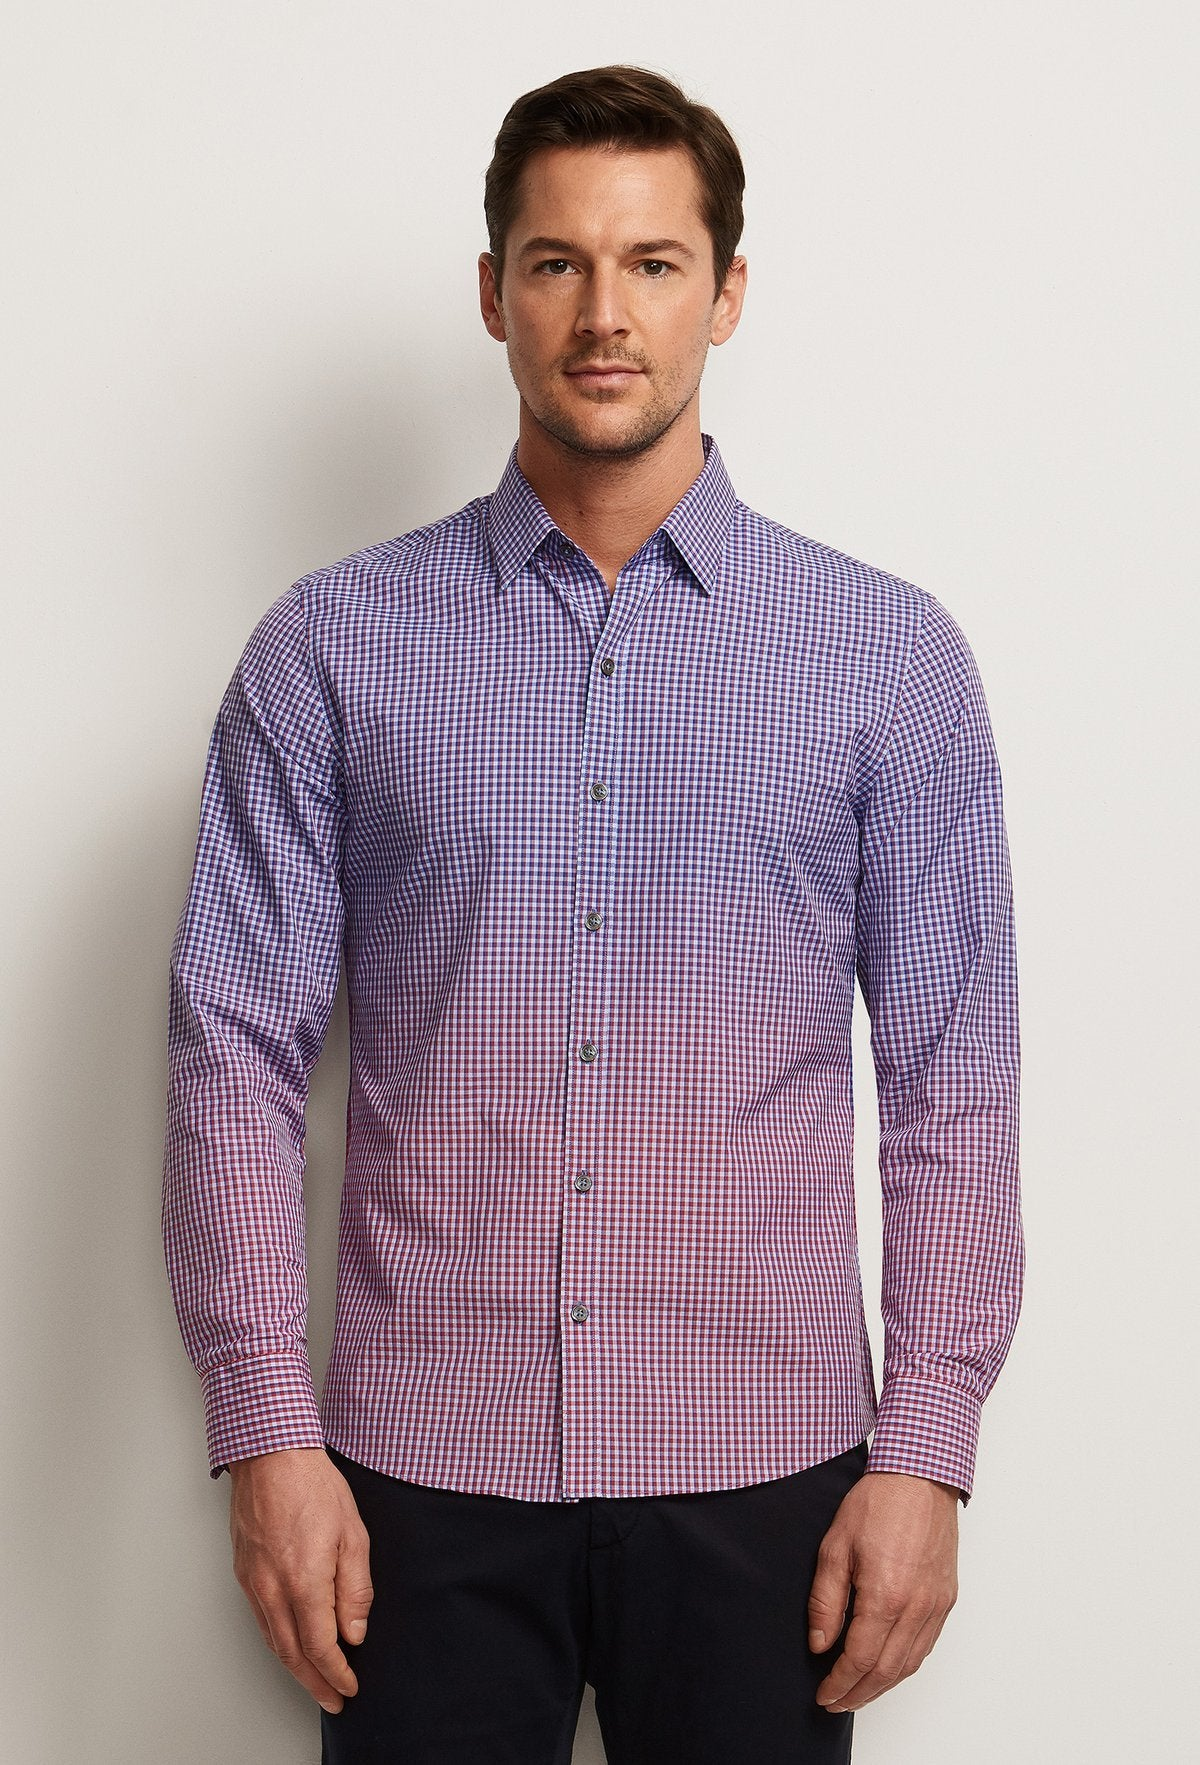 red and blue check shirt men's degrade gradient effect